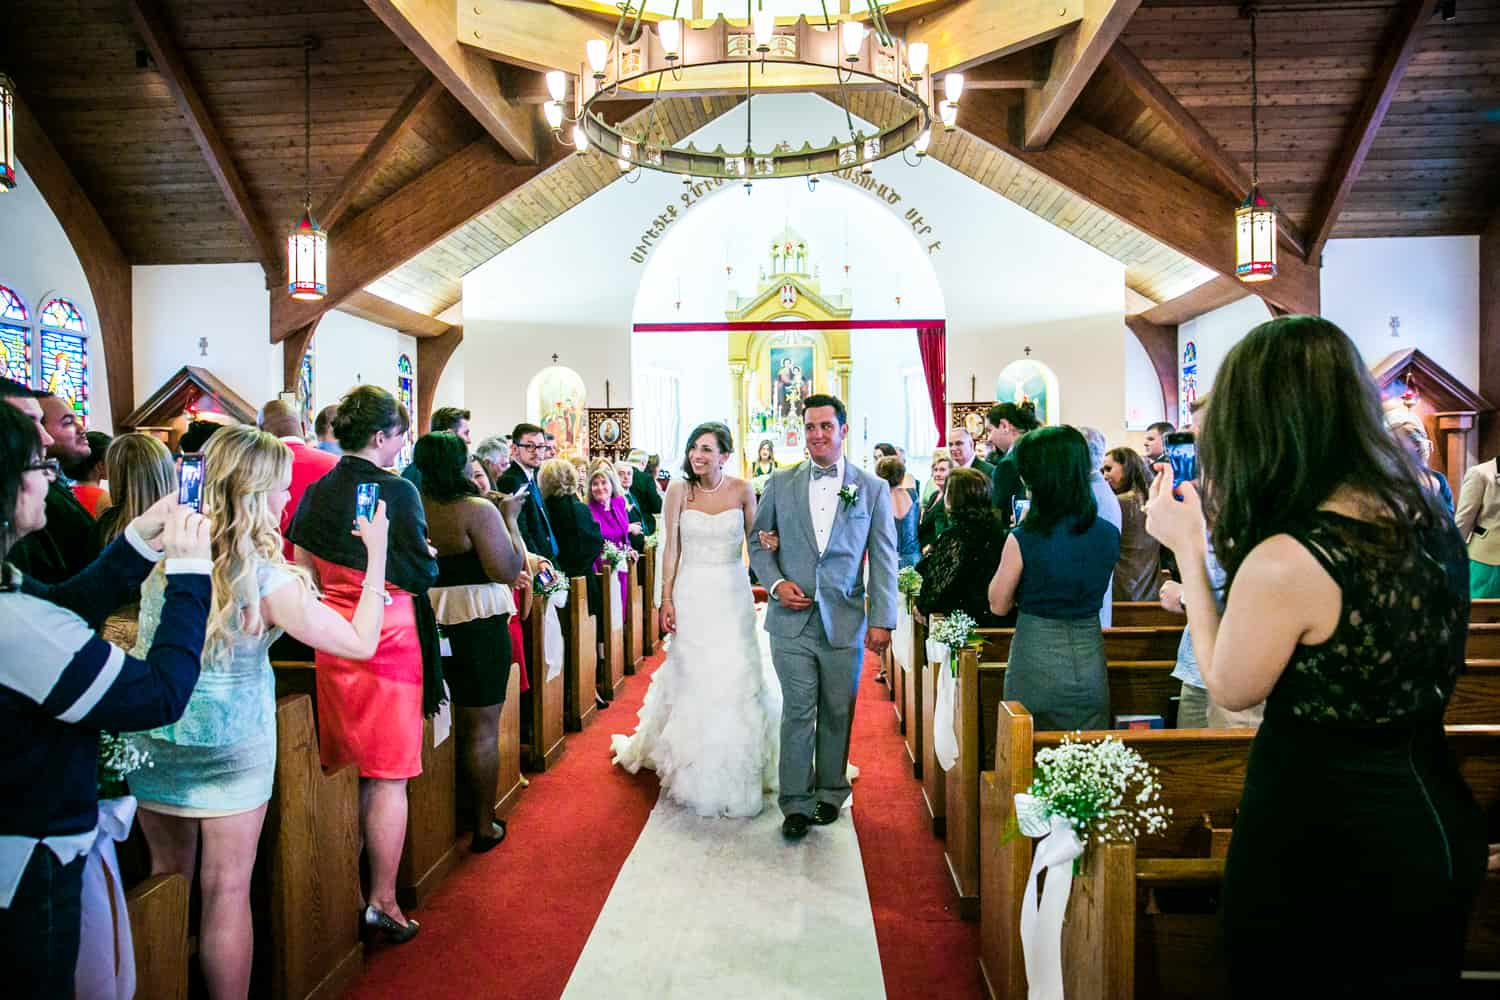 Bride and groom walking down aisle after ceremony for an article called 'Do you need a second photographer?'